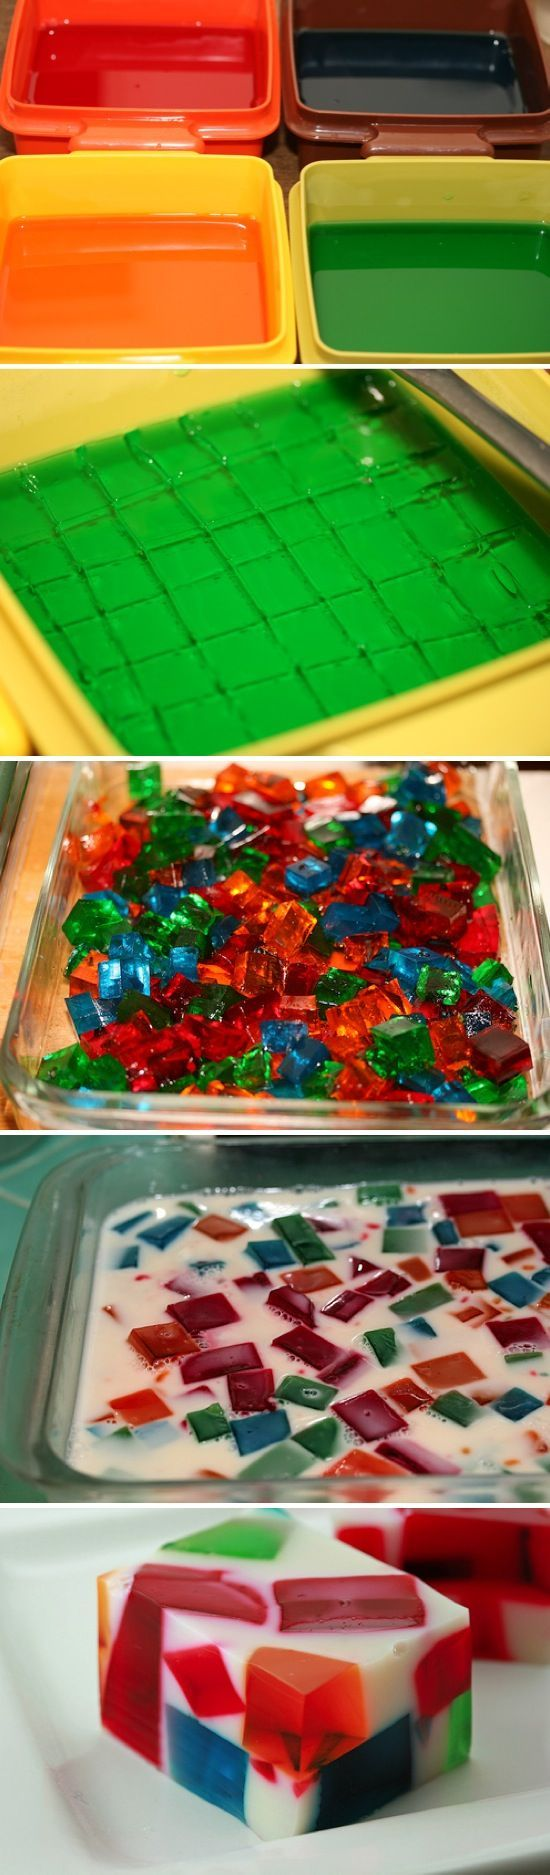 (link) Broken Glass Jell-o ~ This is the coolest Jello idea! Although it takes a bit of planning ahead for the Jello to cool, it looks like it would be a lot of fun. Make it into a holiday jello by using festive colors; red, white, and blue for The 4th of July; red and green for Christmas, pastels for Easter, etc. ~ be creative in making shapes, too. Use specialty pan / dish shapes or cookie cutters to tie into a specific holiday. (bundt pan for a wreath; heart-shape for Valentines)